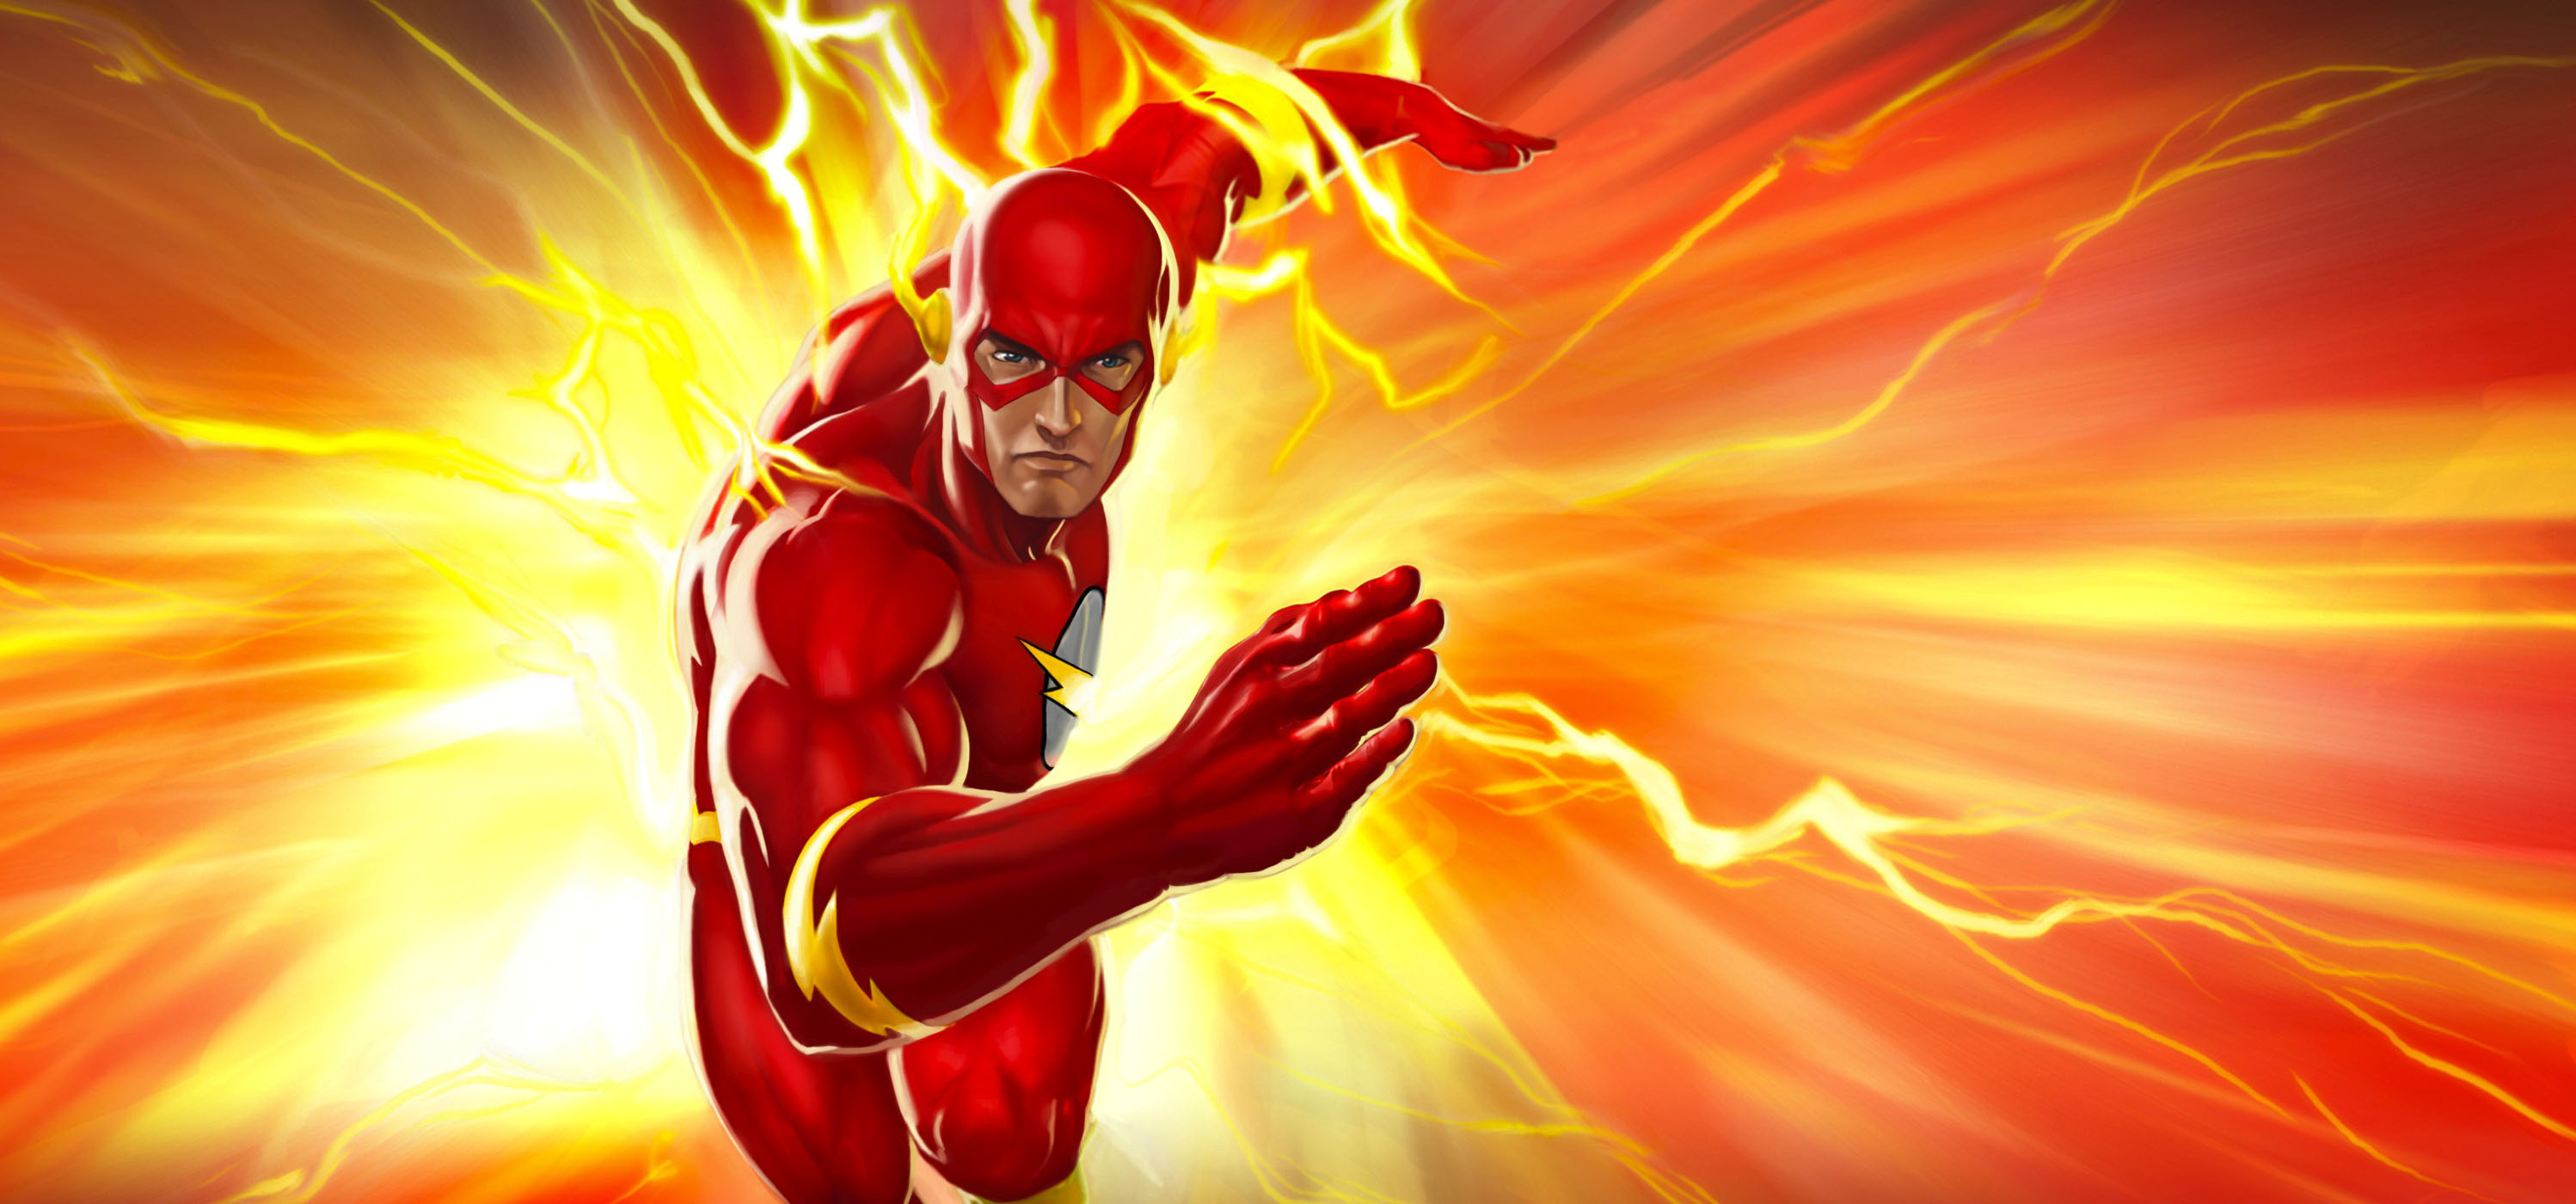 10 curiosidades sobre o flash que voc n o sabia ei nerd for Disegni di flash